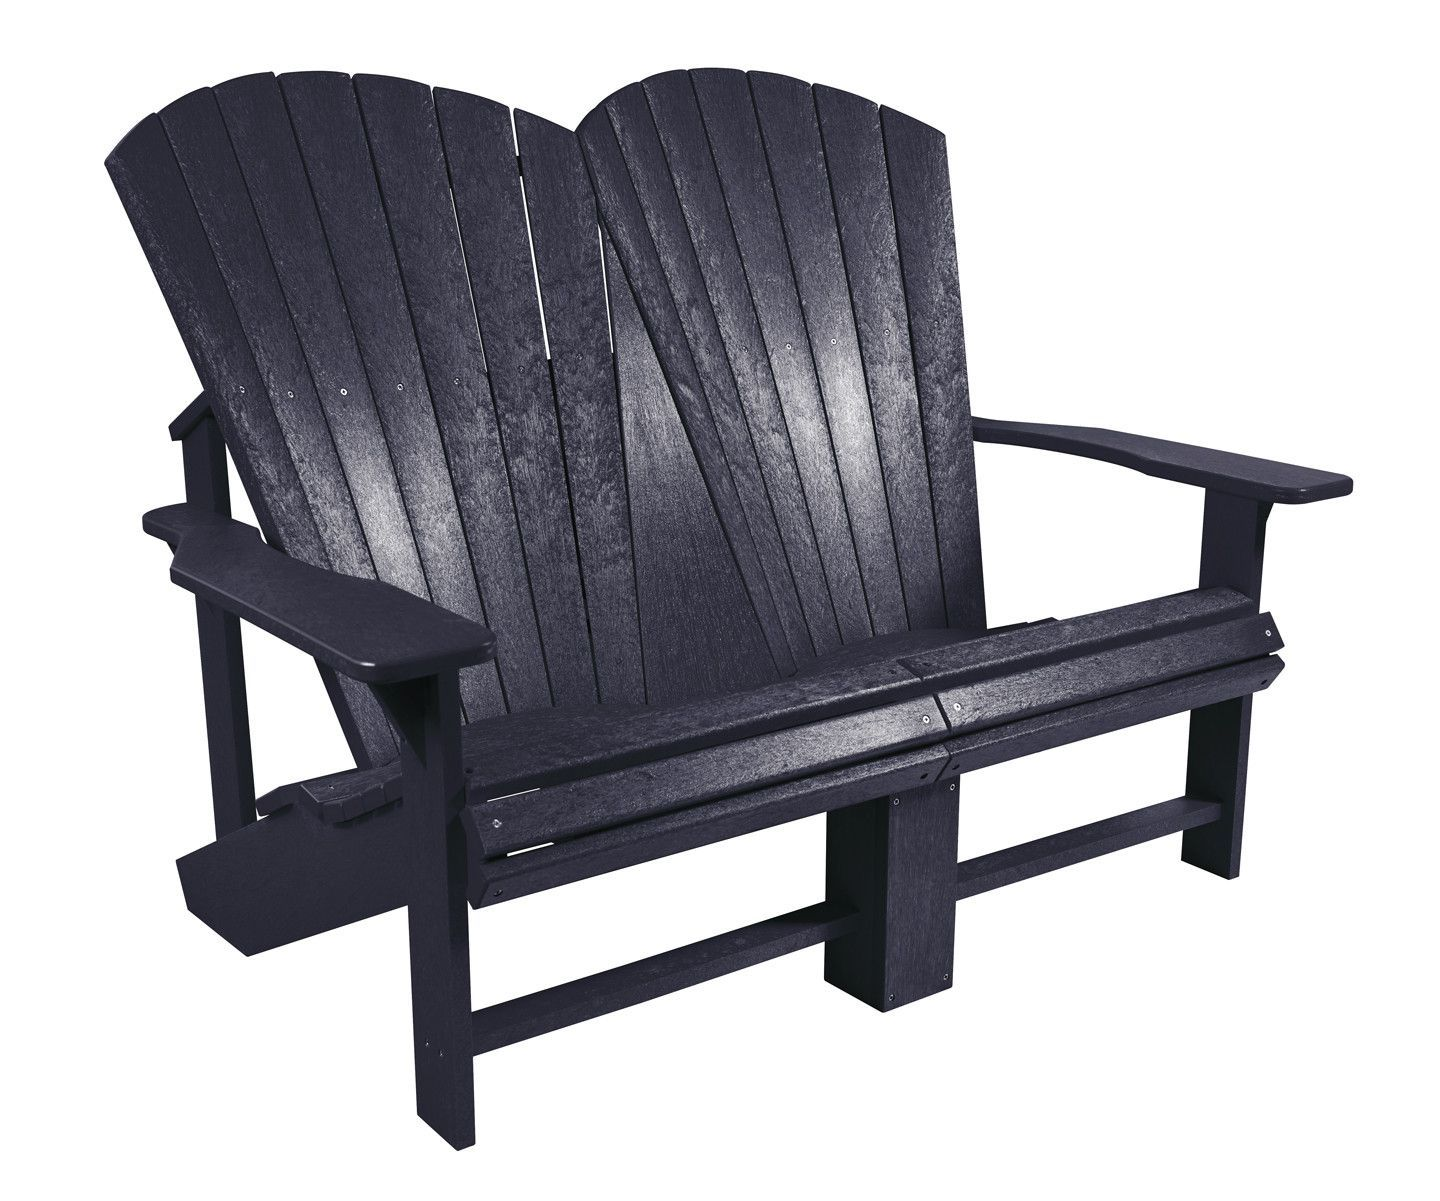 Cuyler Solid Wood Folding Adirondack Chair Adirondack